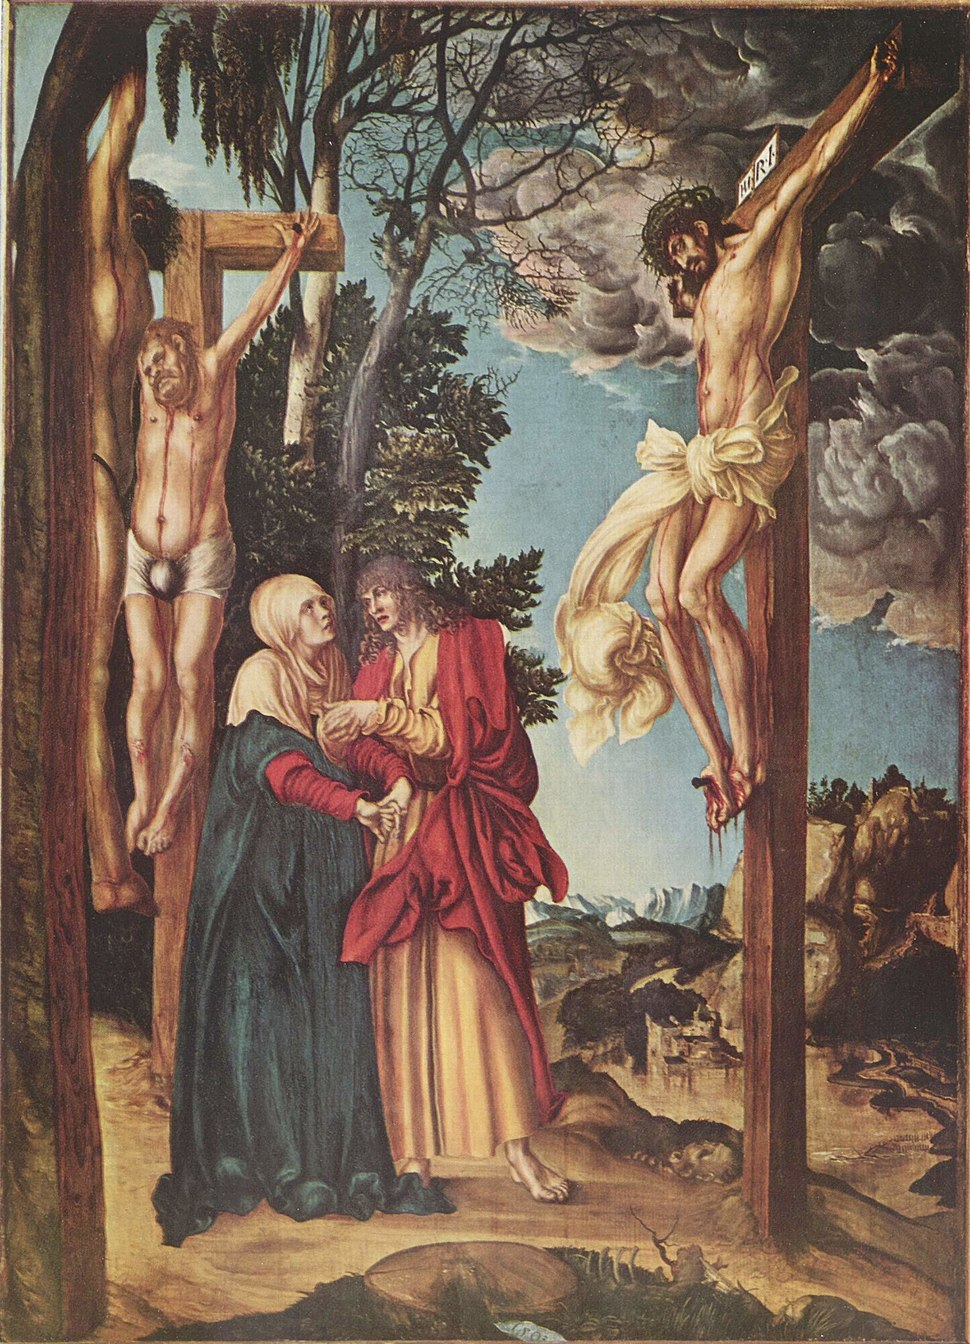 Lucas Cranach d. %C3%84. - The Lamentation of Christ - The Schlei%C3%9Fheim Crucifixion - Alte Pinakothek